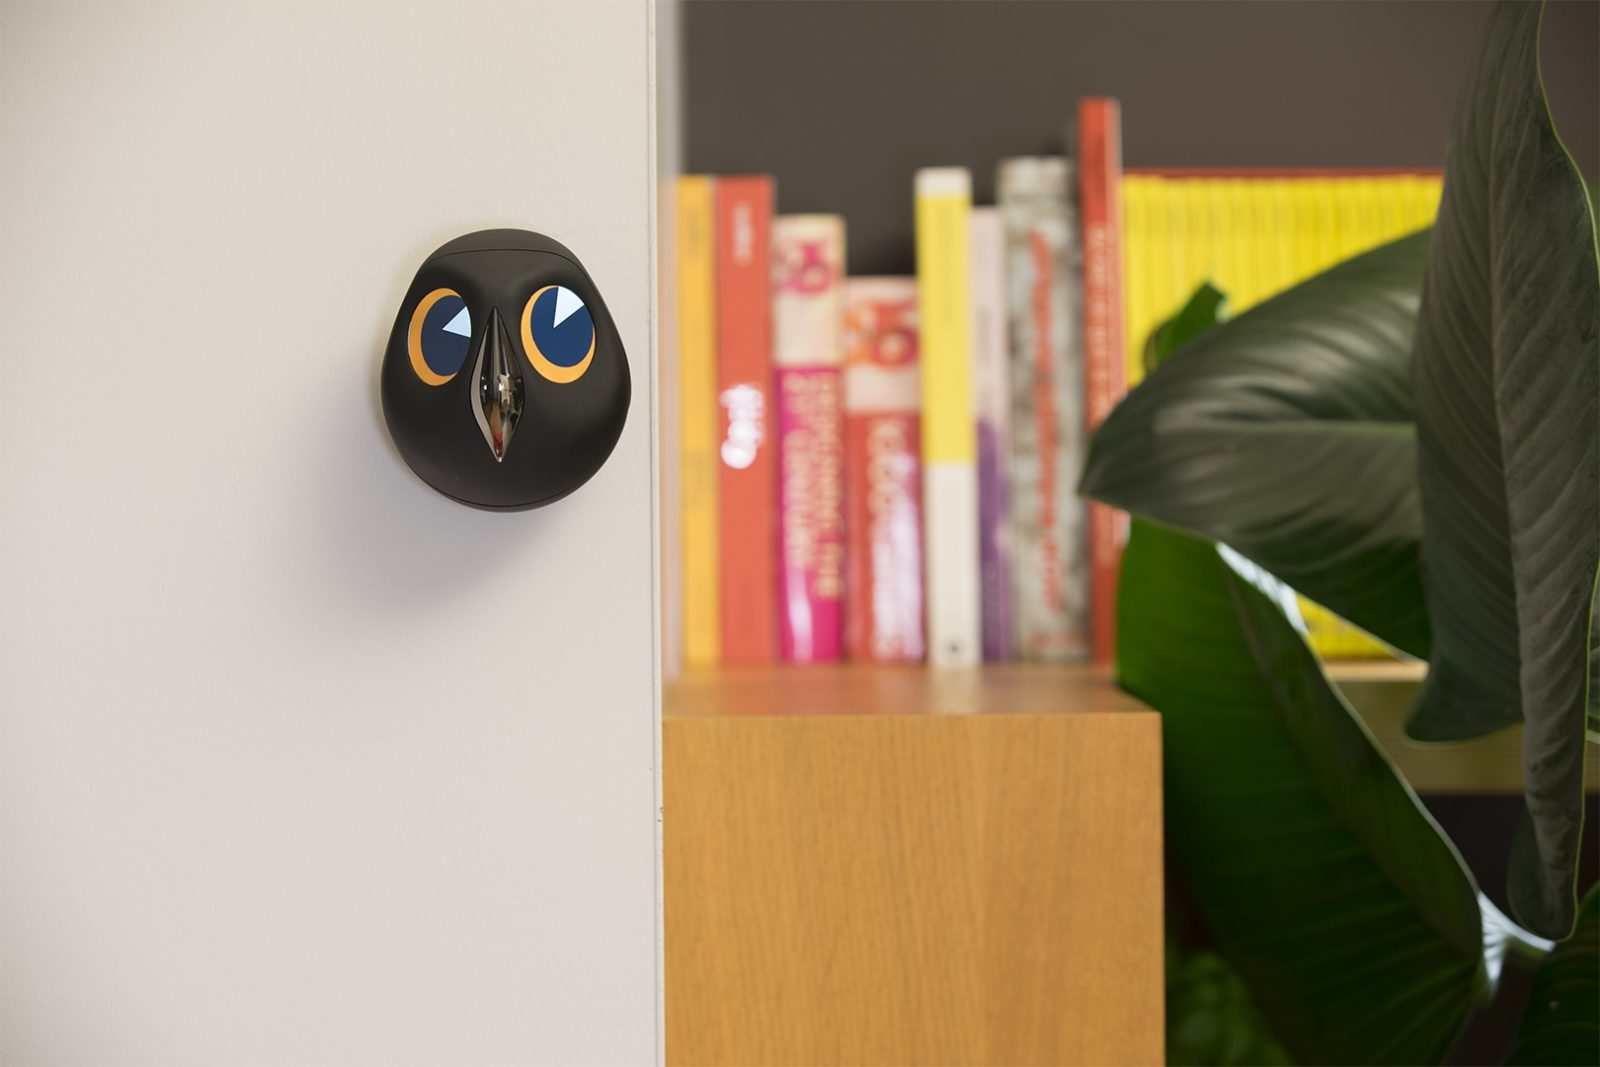 Ulo – The Interactive Surveillance Camera